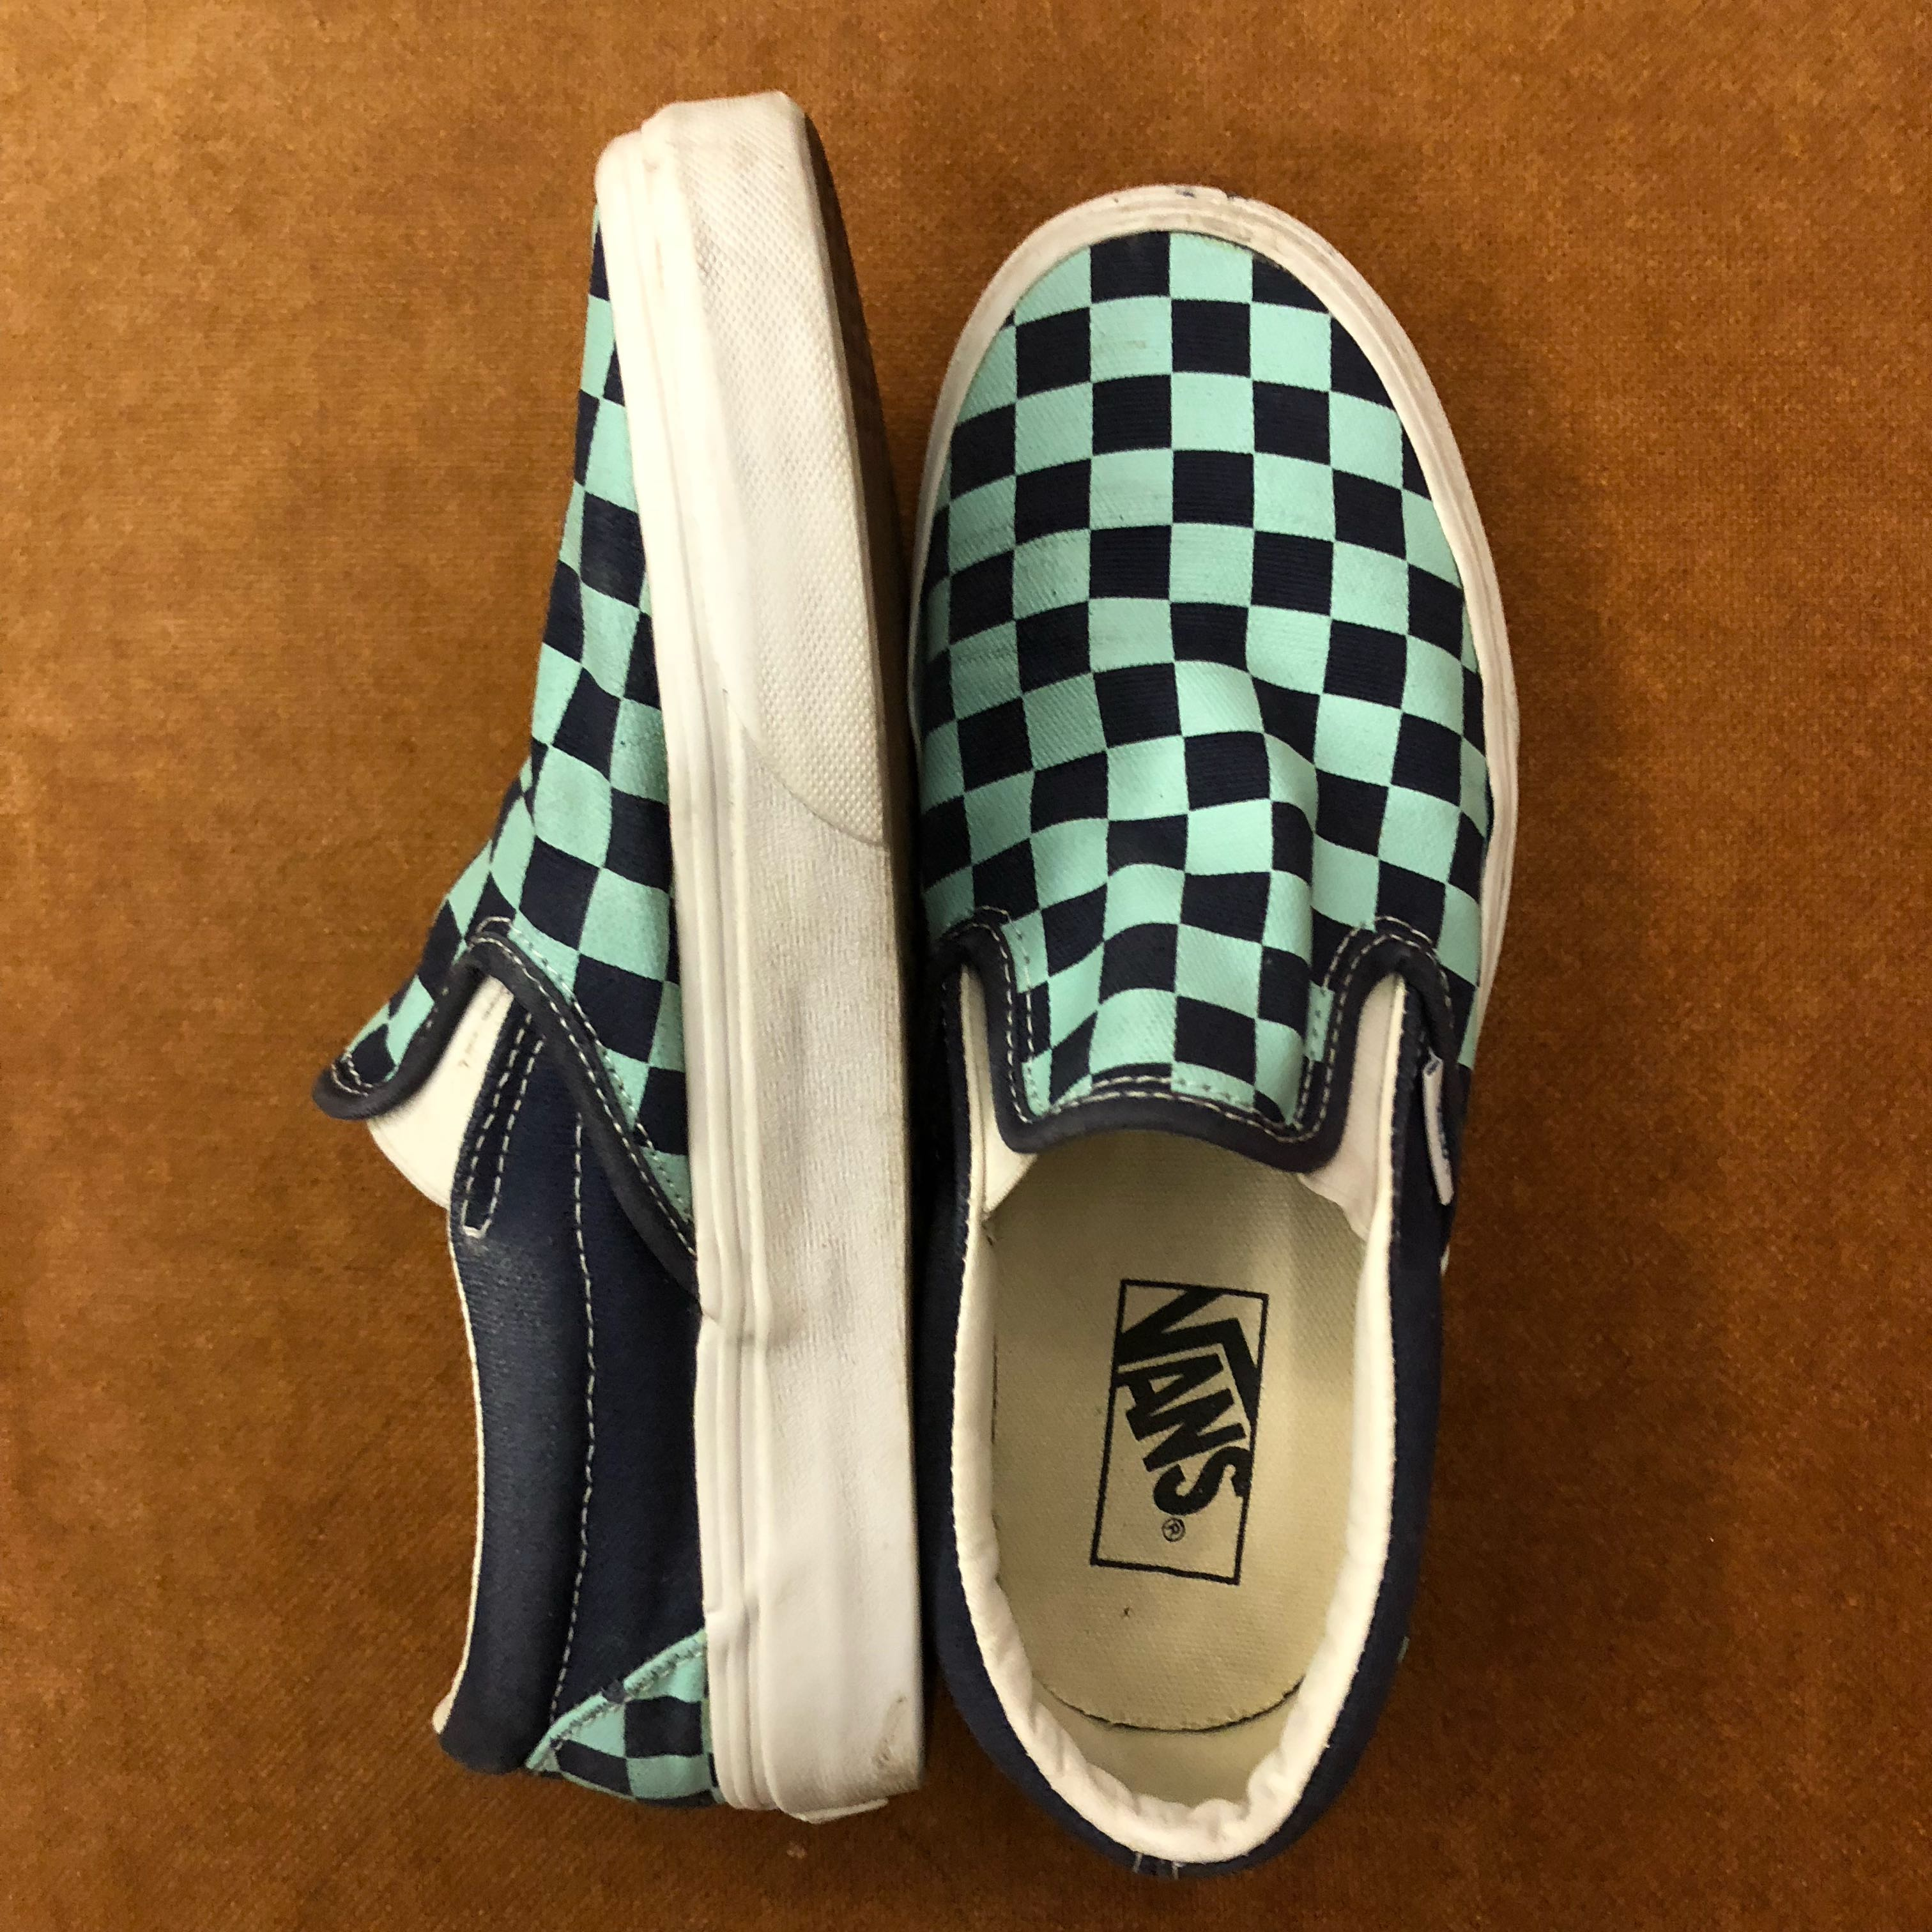 5667a18480e9 Vans Checkered Turquoise Navy Shoe